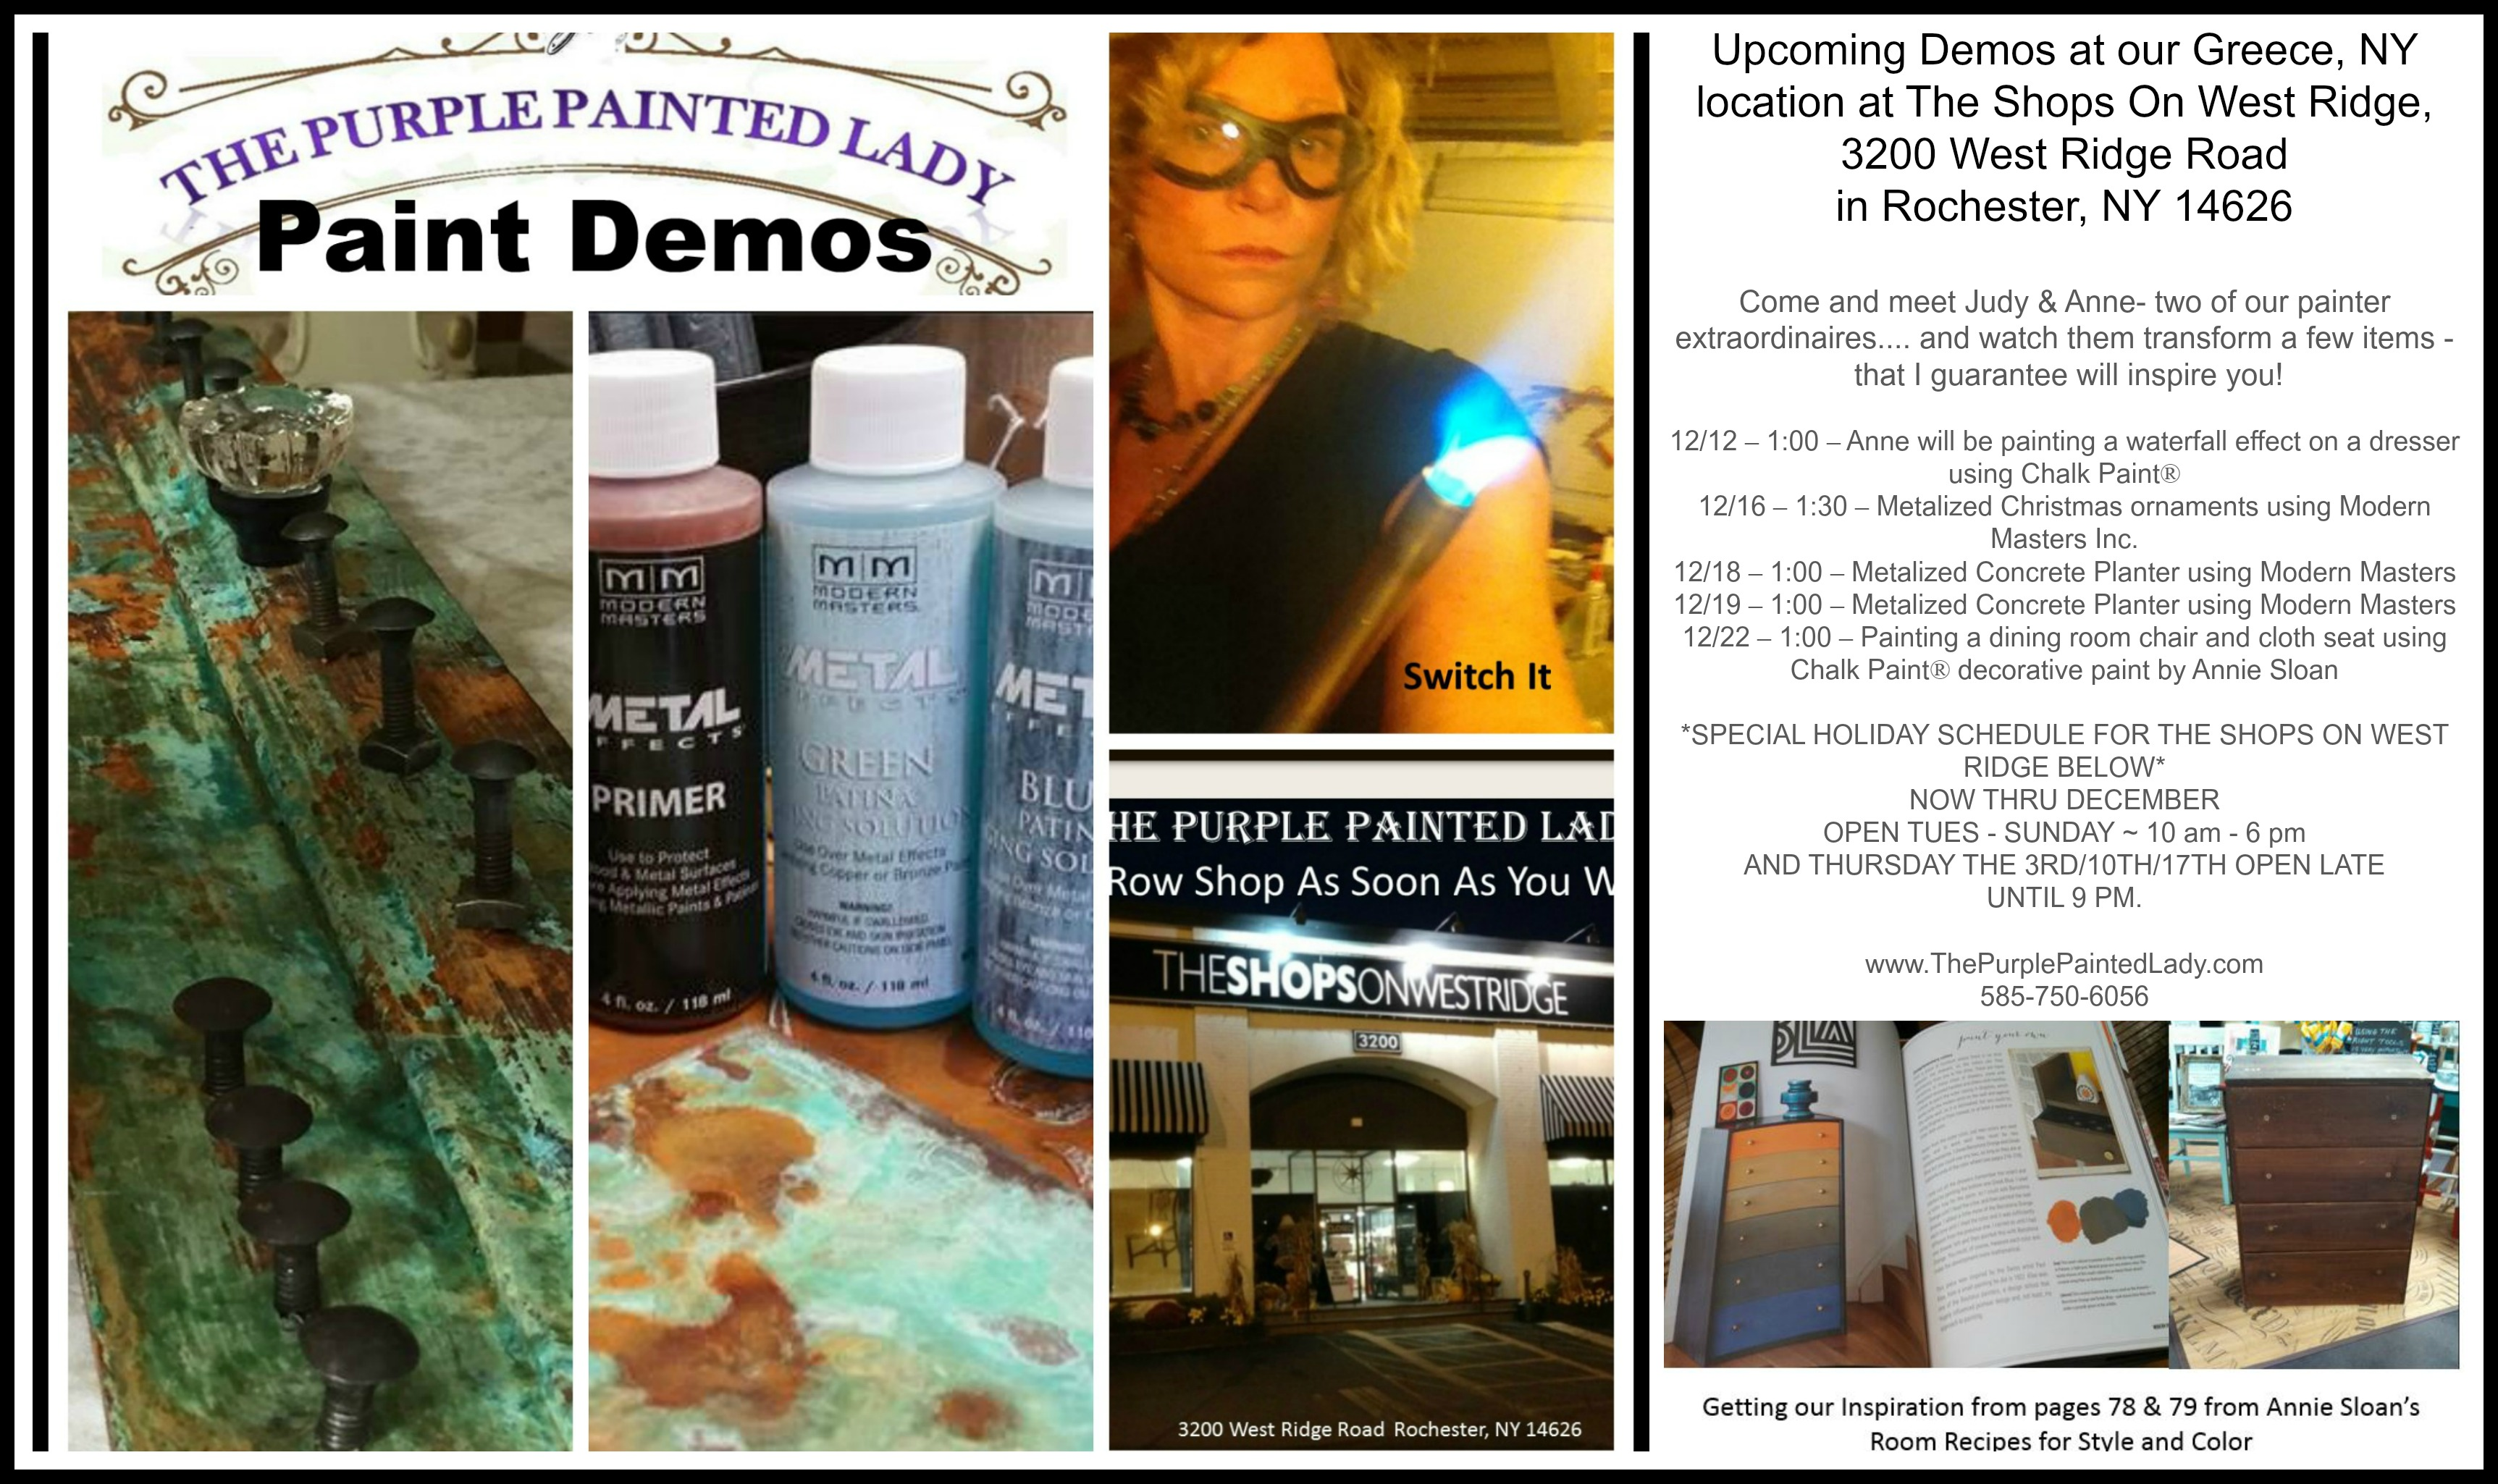 Judy and Anne Holiday Demo Greece schedule 2016 shops The Purple Painted Lady